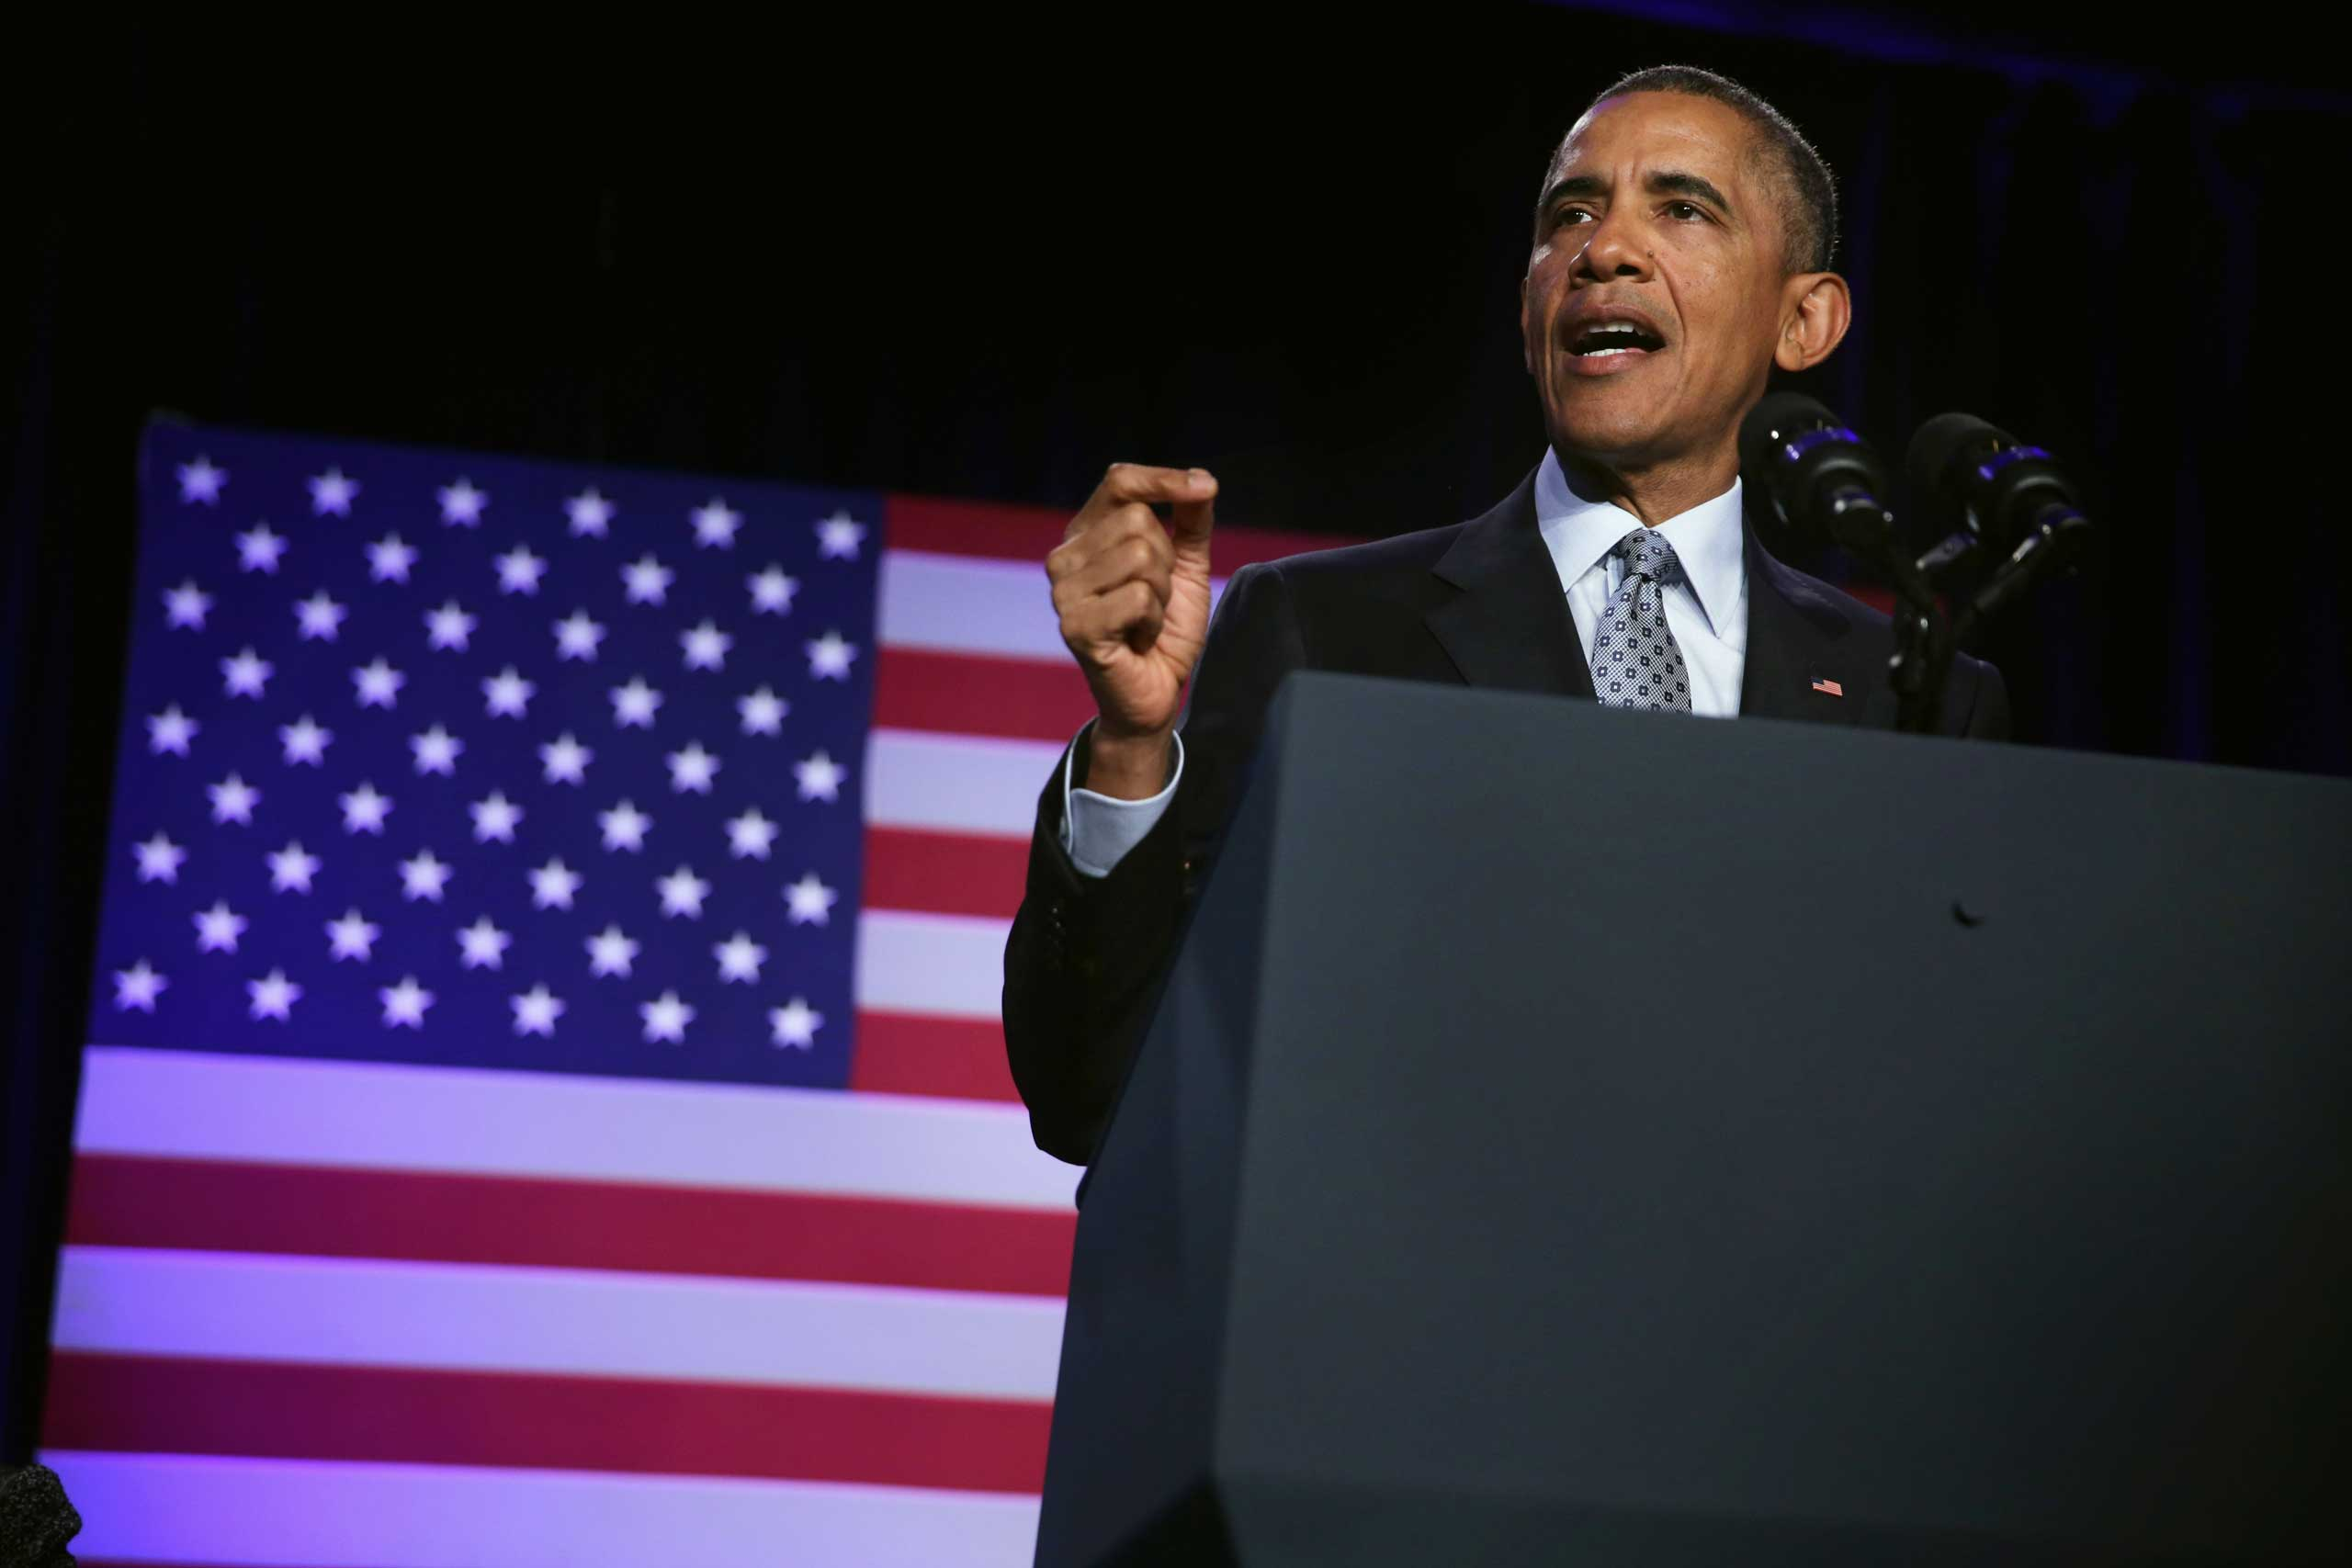 President Barack Obama speaks during the General Session of the 2015 DNC Winter Meeting in Washington, DC, Feb. 20, 2015.